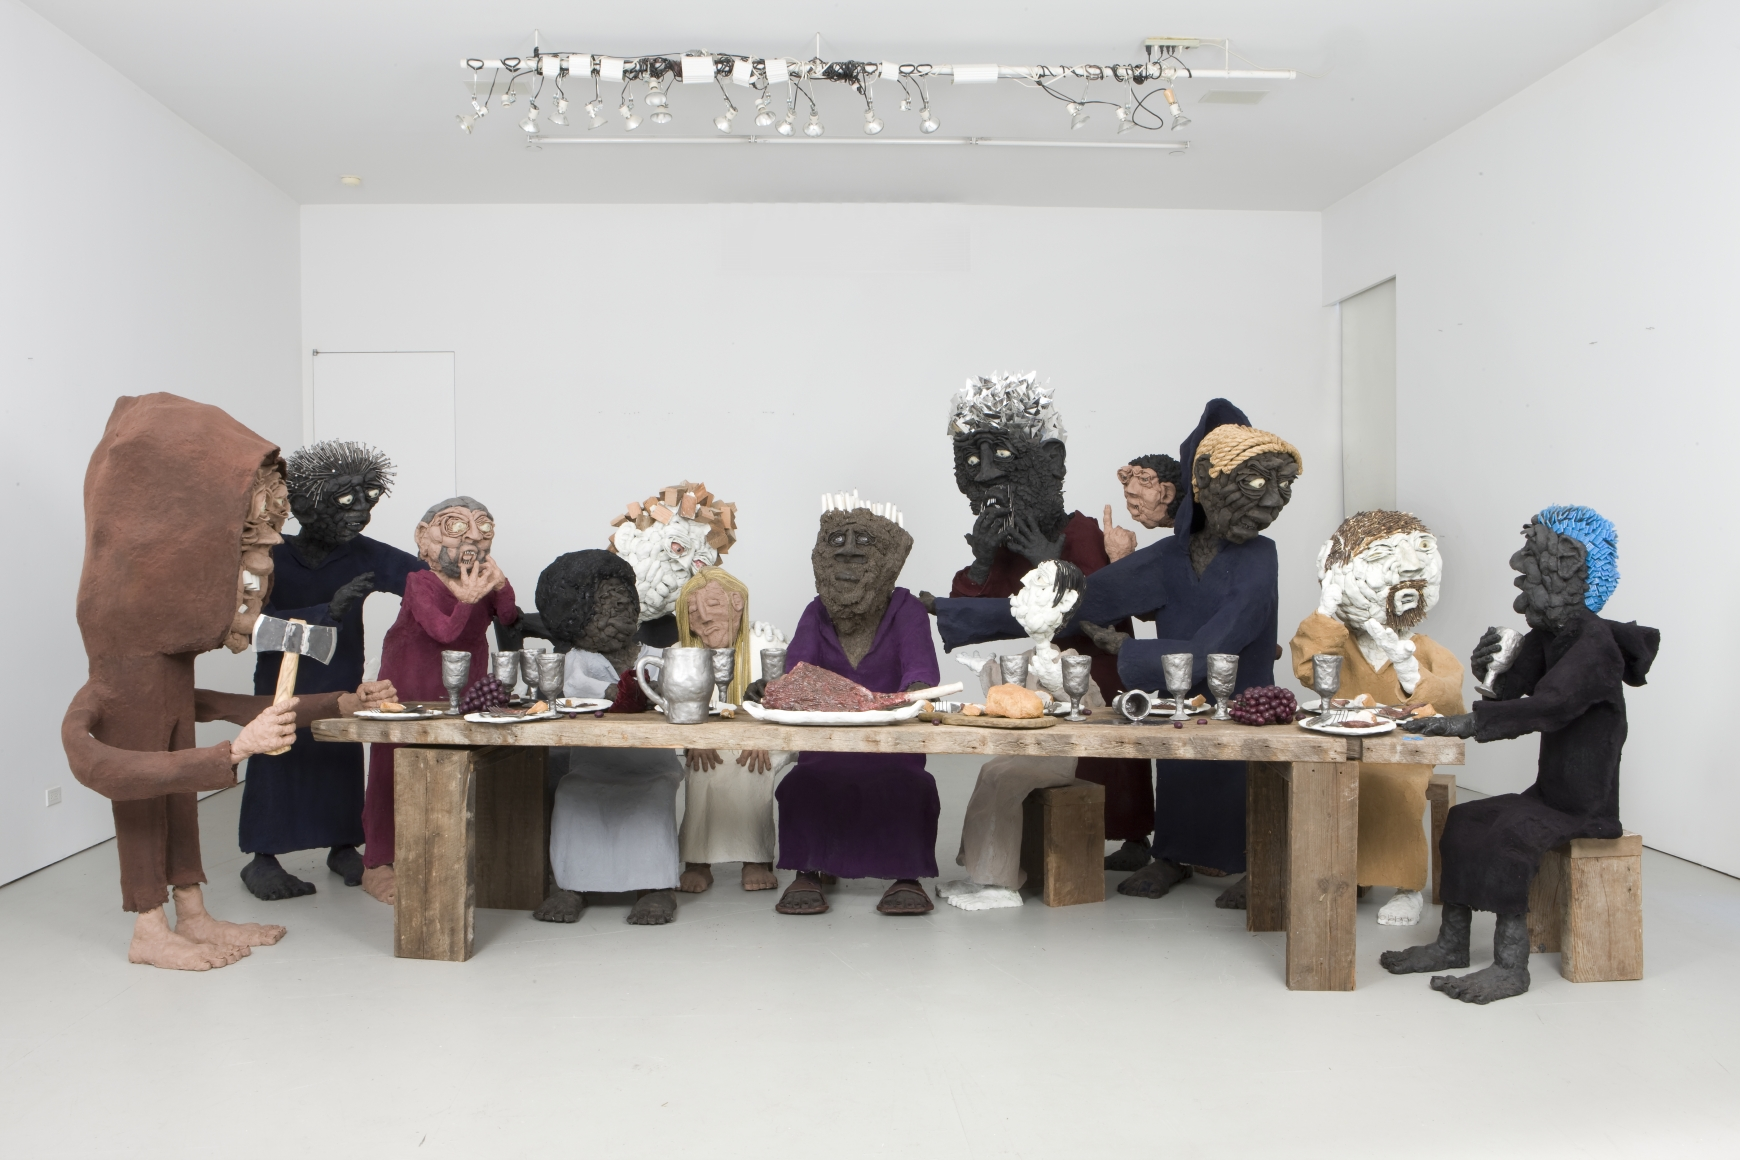 Will Ryman, Dinner Party, 2010, mixed media, 118 × 195 × 84 in.